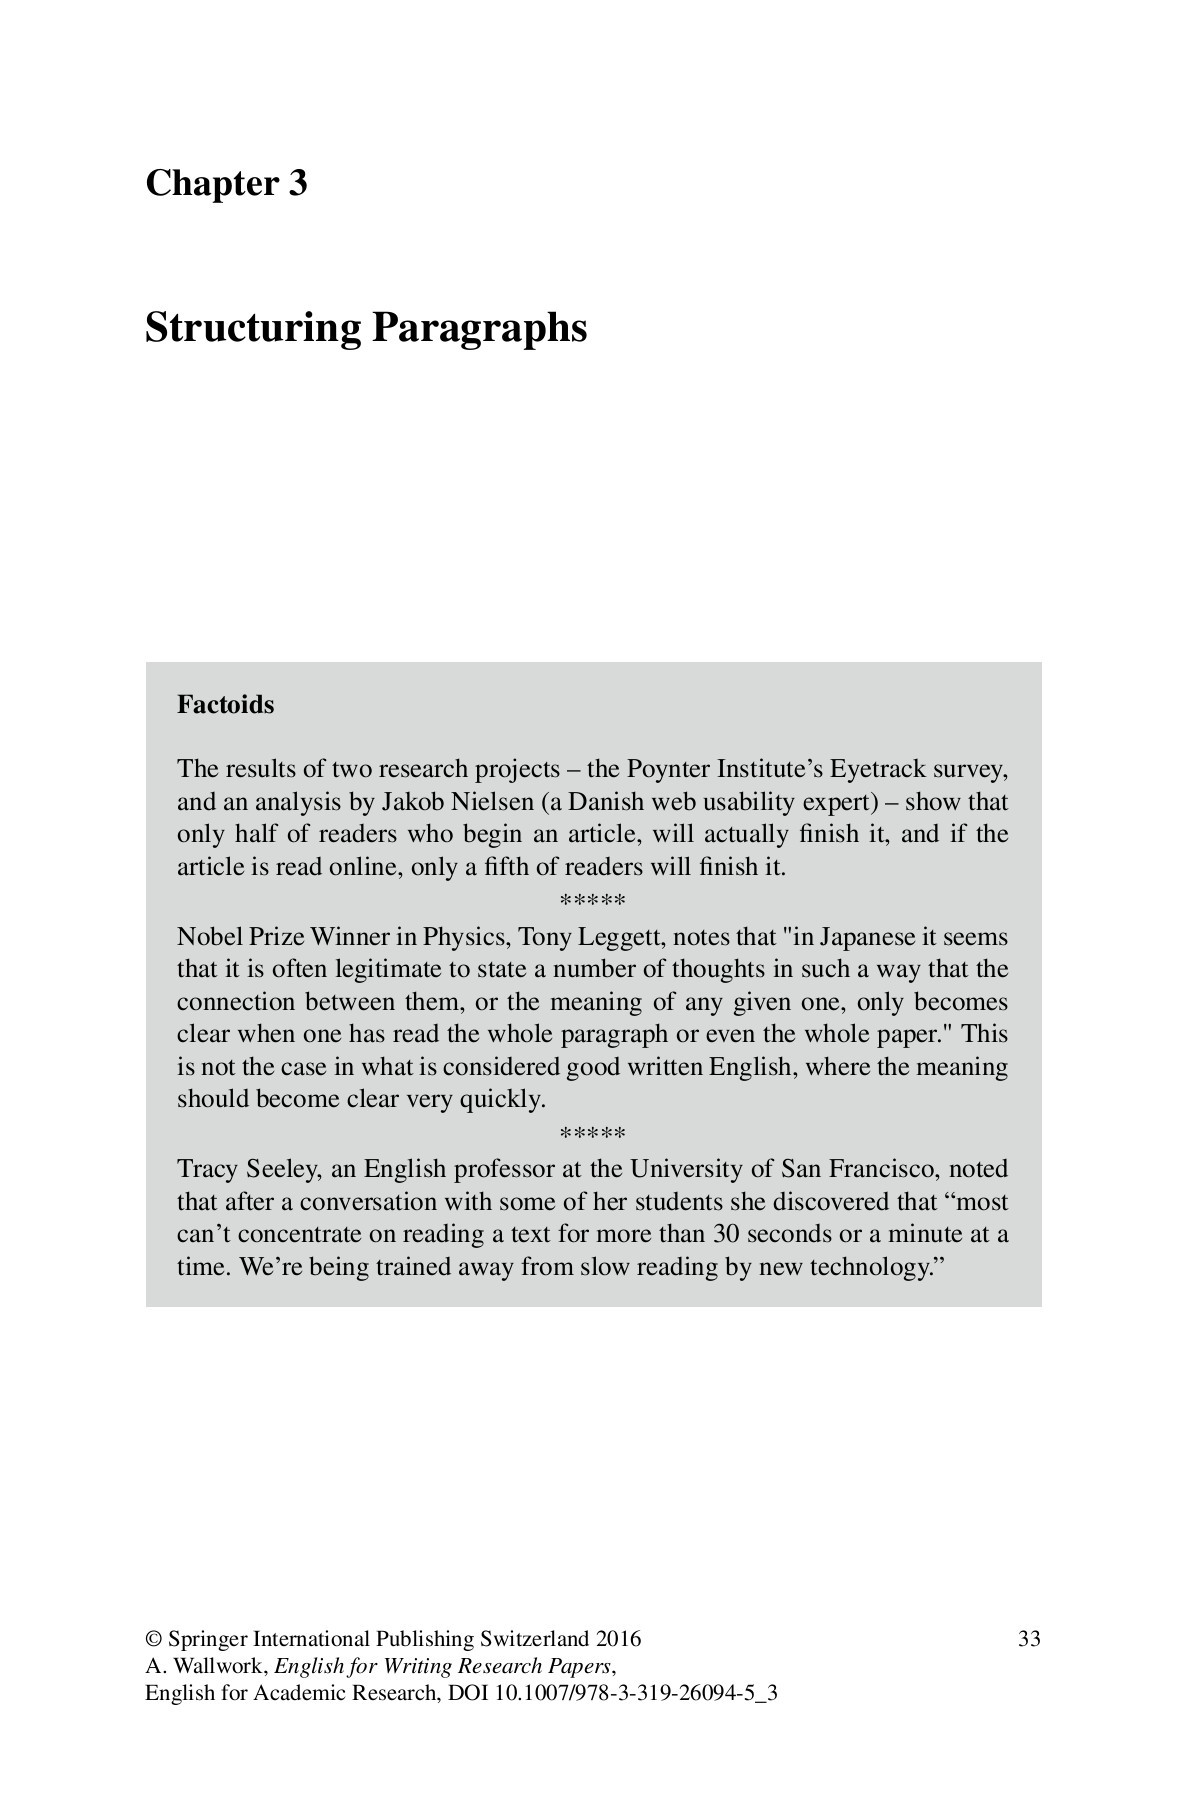 004 Research Paper English For Writing Papers Springer Awesome Pdf Useful Phrases - Full